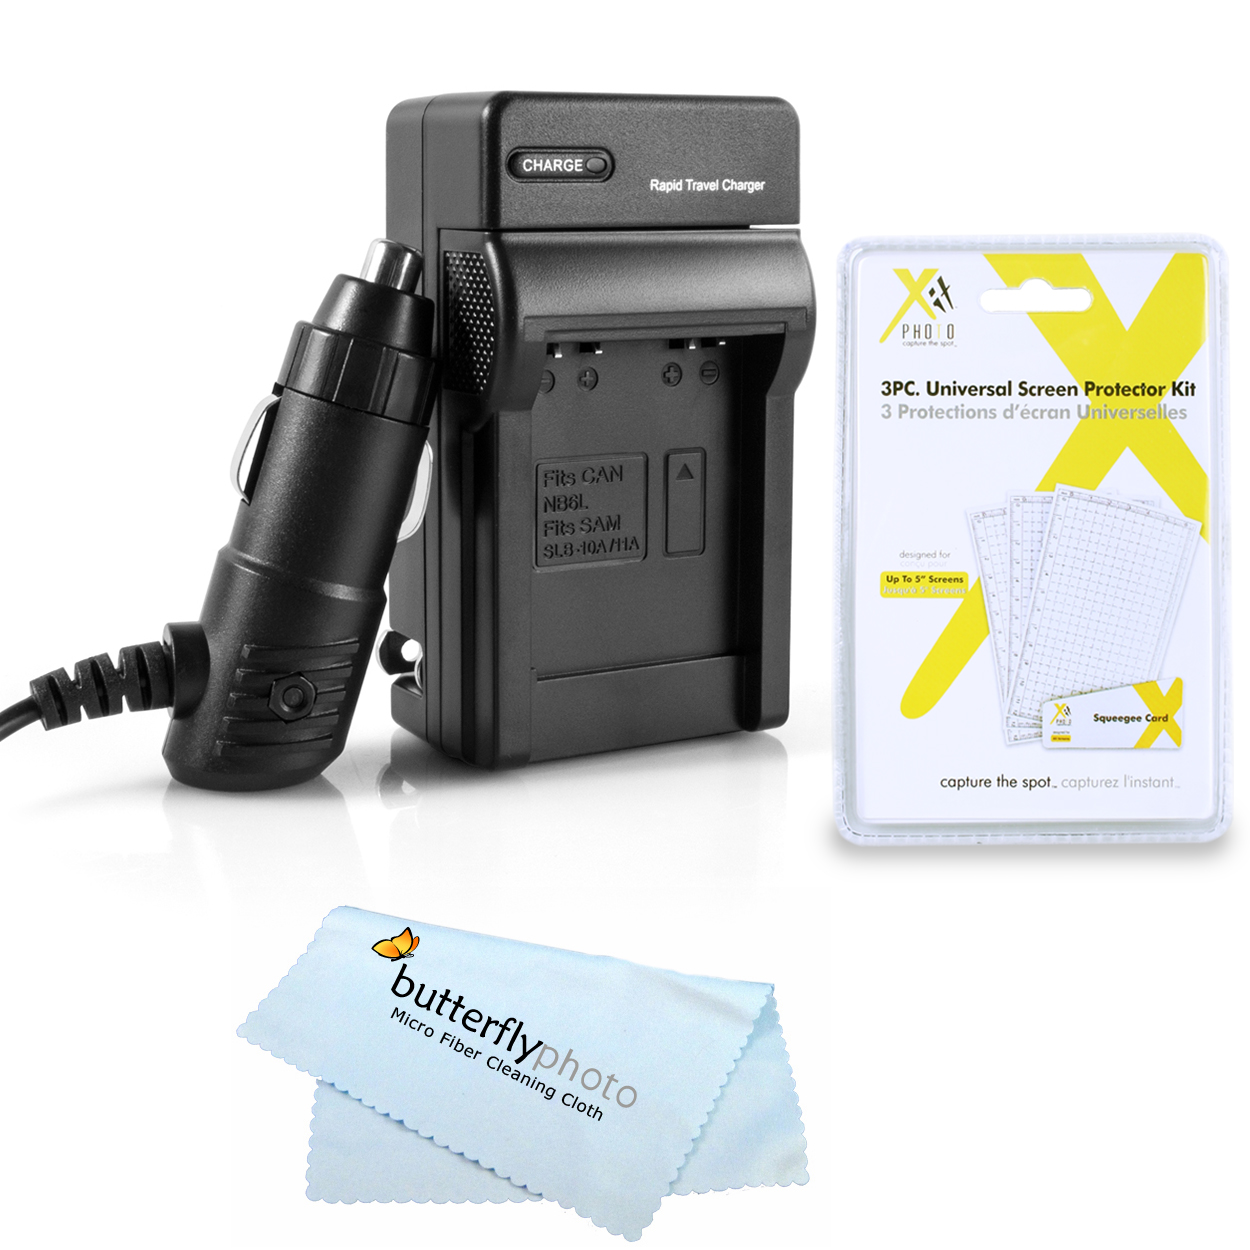 Battery Charger Kit For Nikon Coolpix S3700, S2800, S2900, S33, S7000, S6900, S4300, S3300, S5200, S6500, S3200, S4200, S32 Digital Camera Includes Ac/Dc Rapid Charger For Nikon EN-EL19 Battery + More